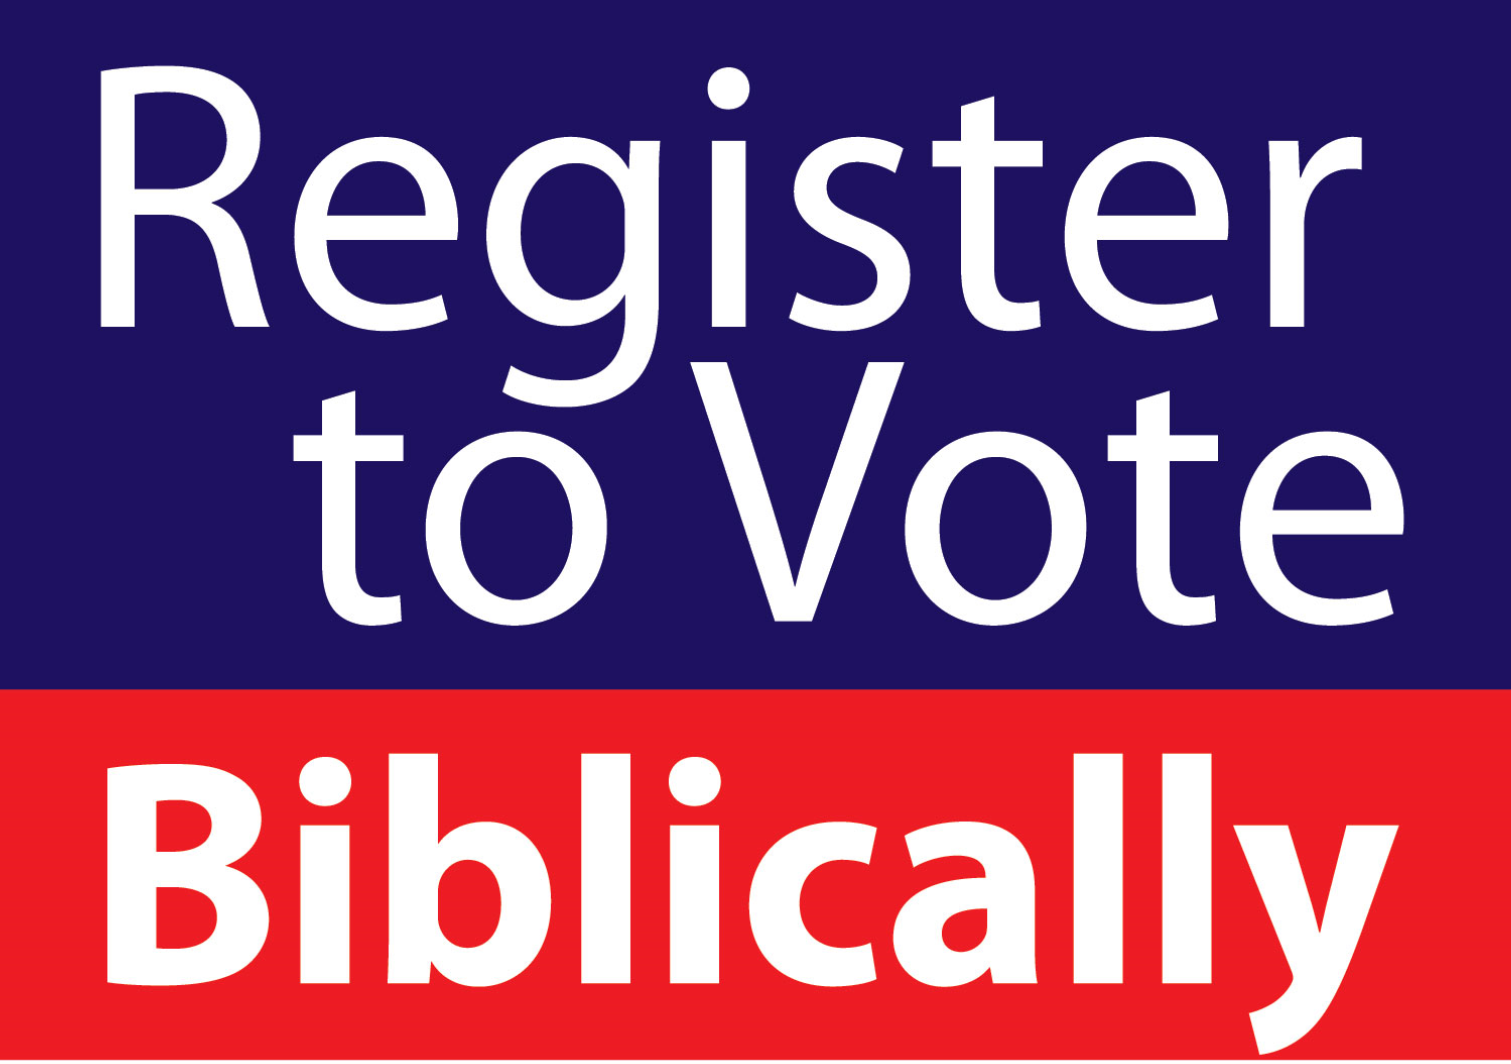 Register to Vote Biblically.png